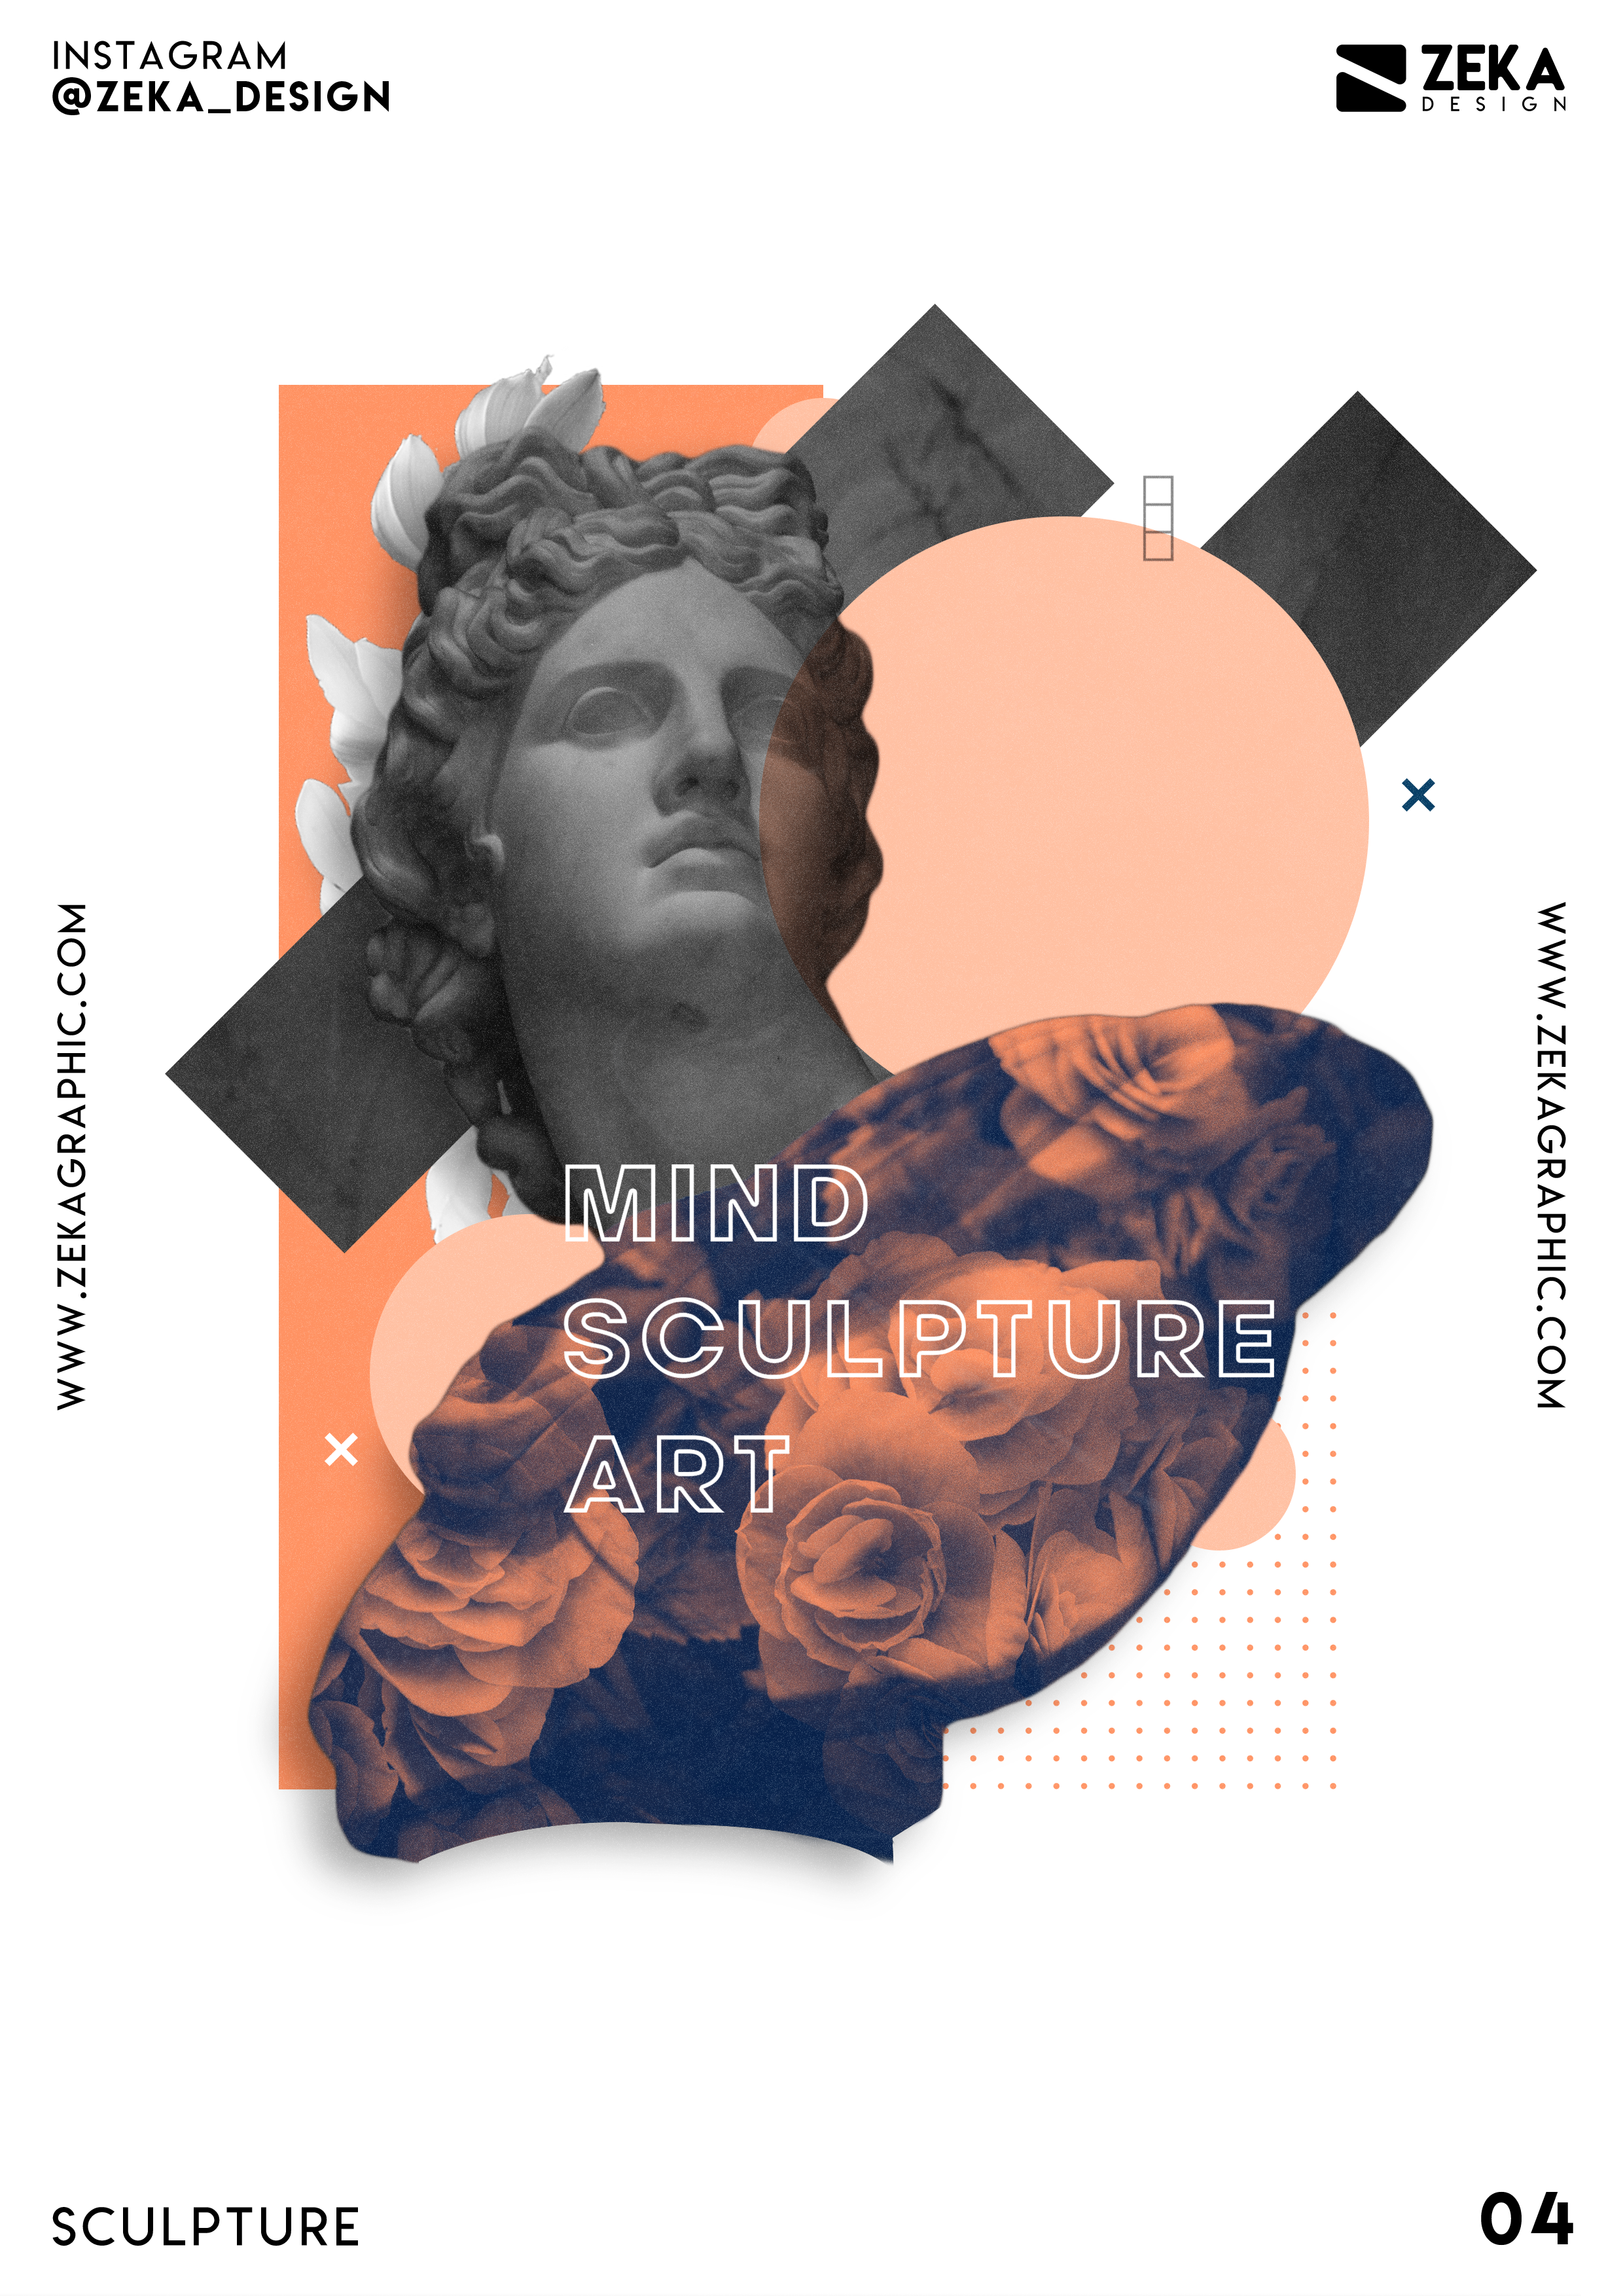 Sculpture Poster Design Series Poster Art And Graphic Design Project By Zeka Design In 2020 Retro Graphic Design Creative Graphic Design Minimalist Graphic Design